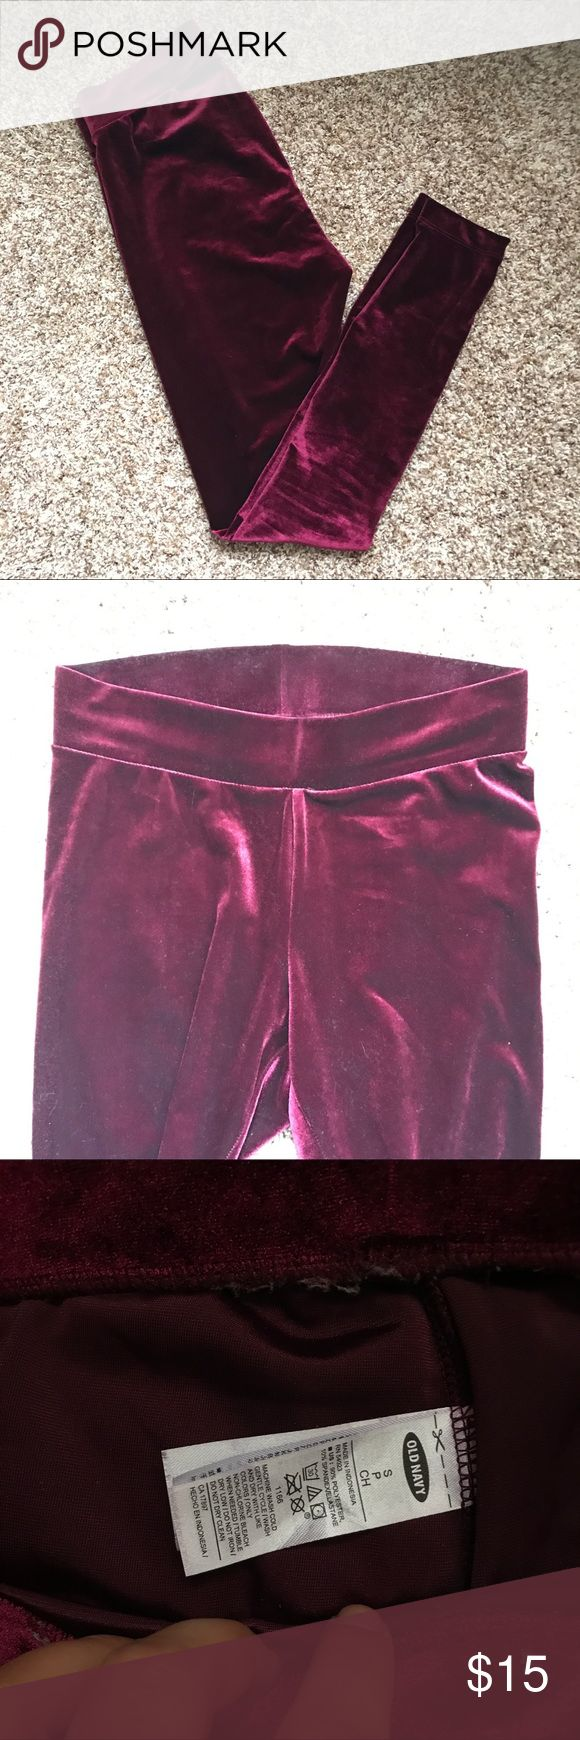 Maroon / oxblood velvet leggings NEW without tags. Very comfortable and warm for winter time. Also selling these in dark gray. Few free to make me an offer or bundle to save! Old Navy Pants Leggings